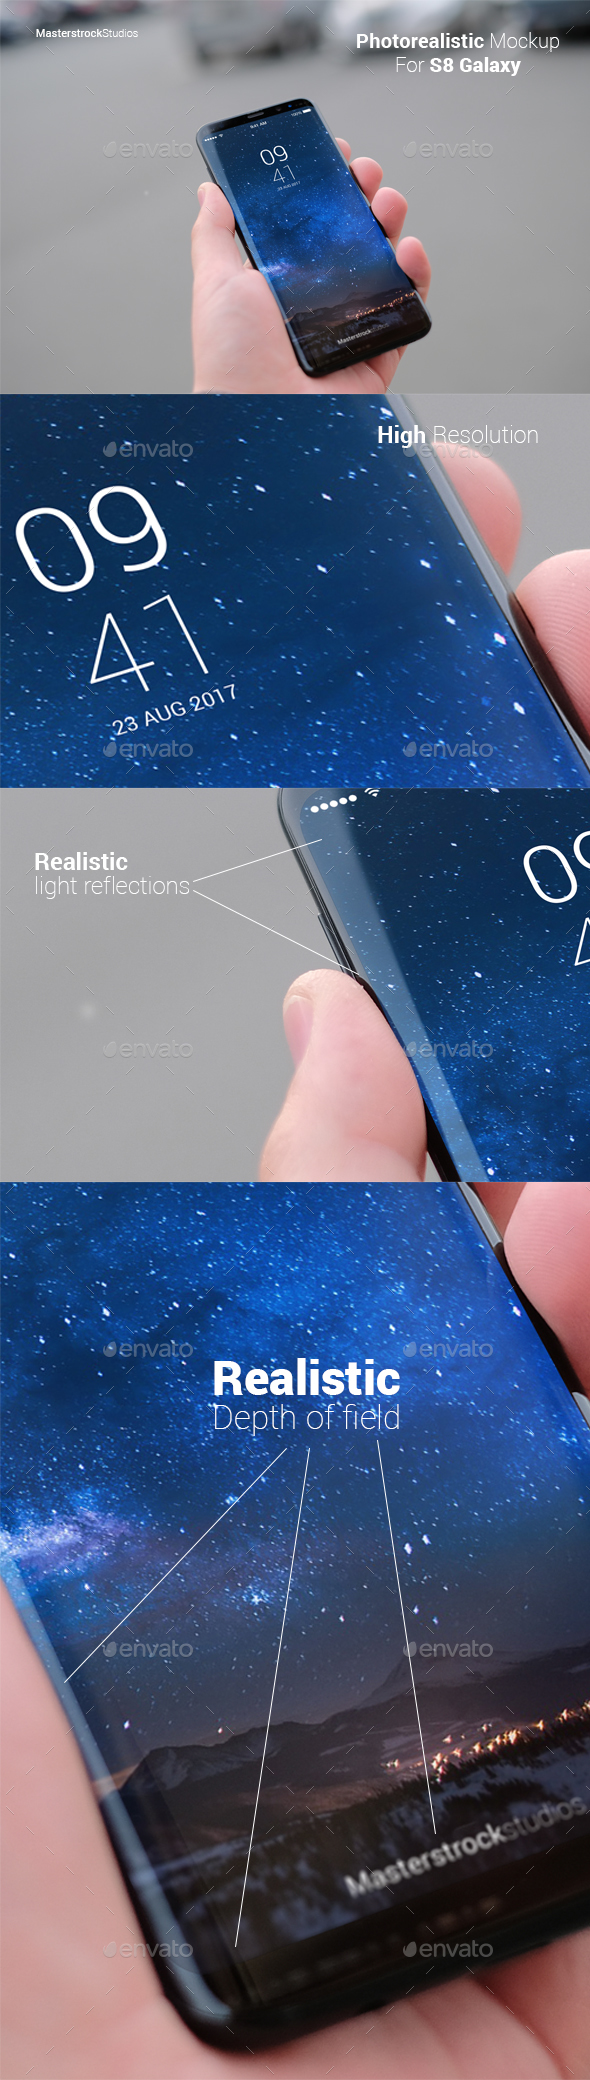 S8 Galaxy Smartphone Photo-realistic Mockup - Mobile Displays